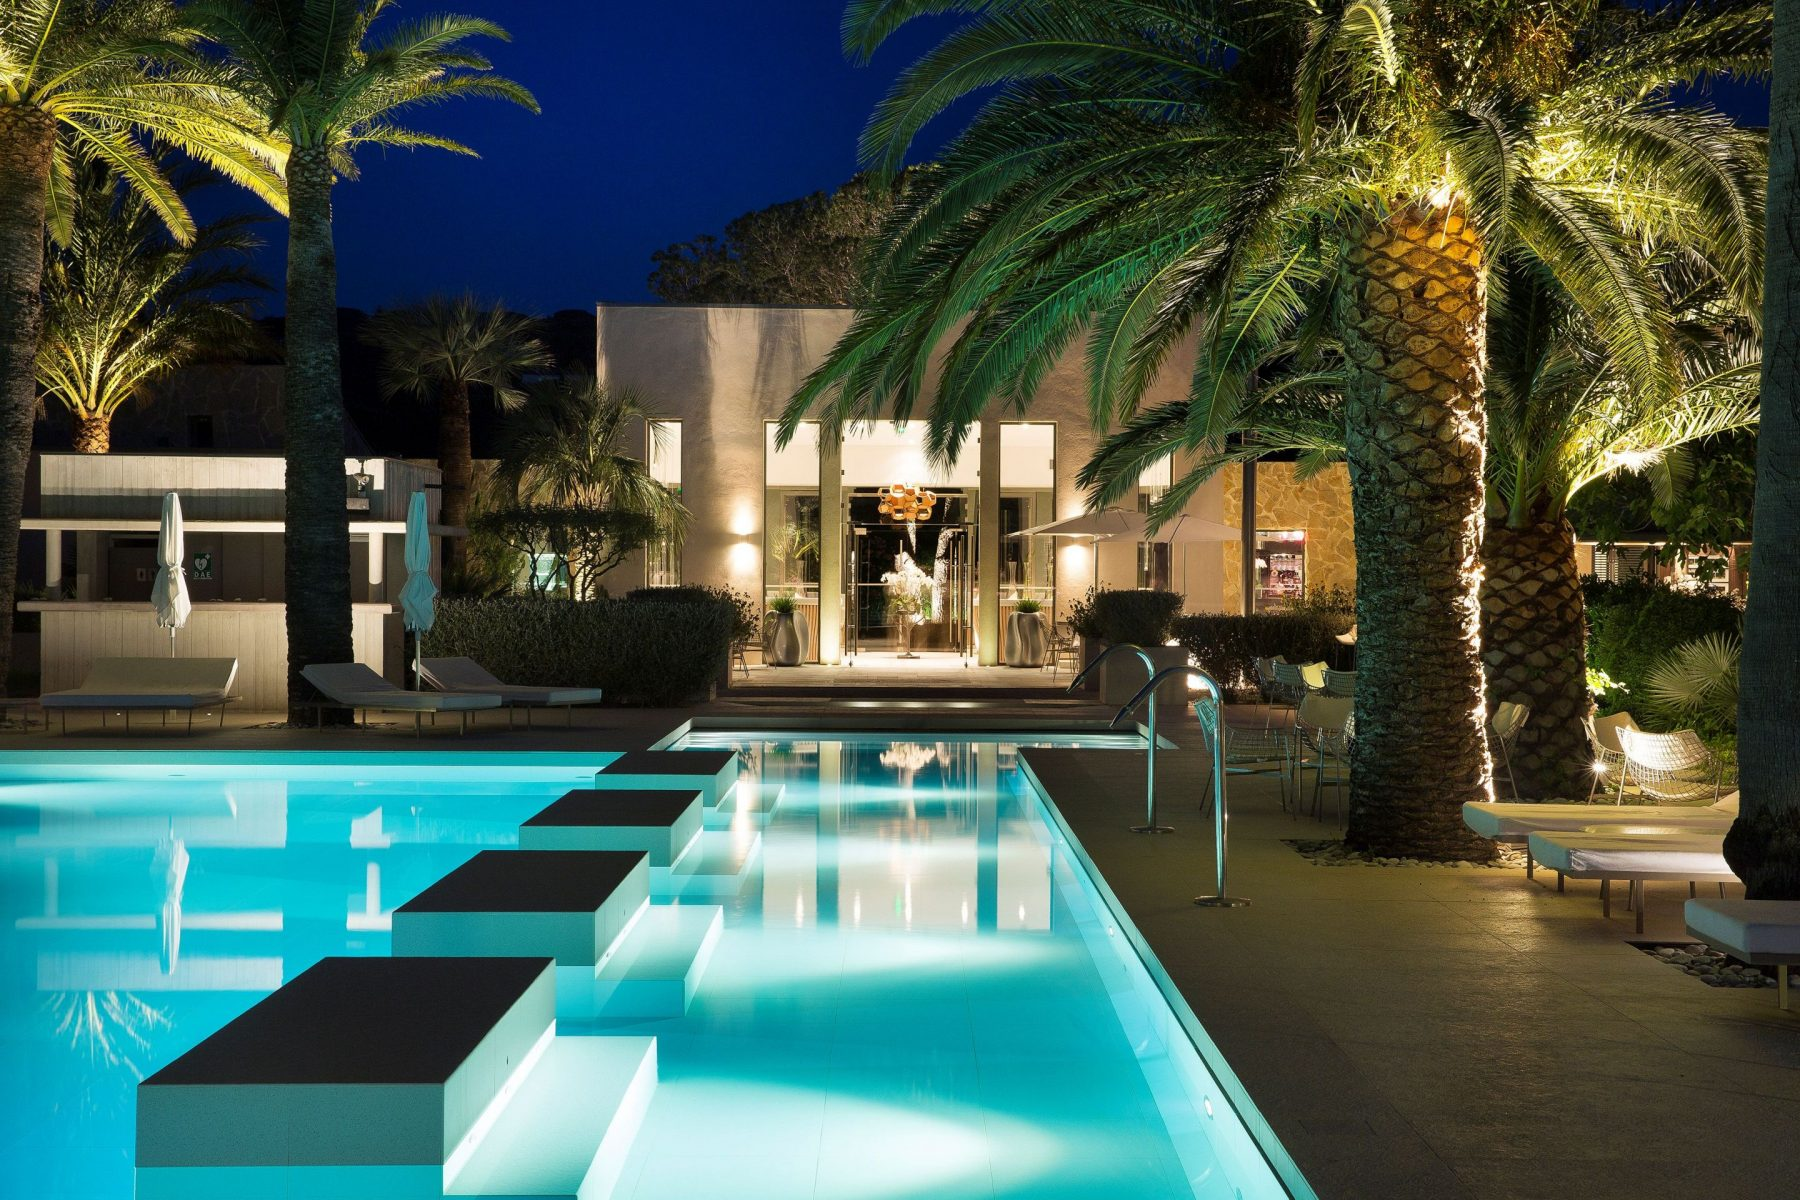 HOTEL SEZZ. Pool by night